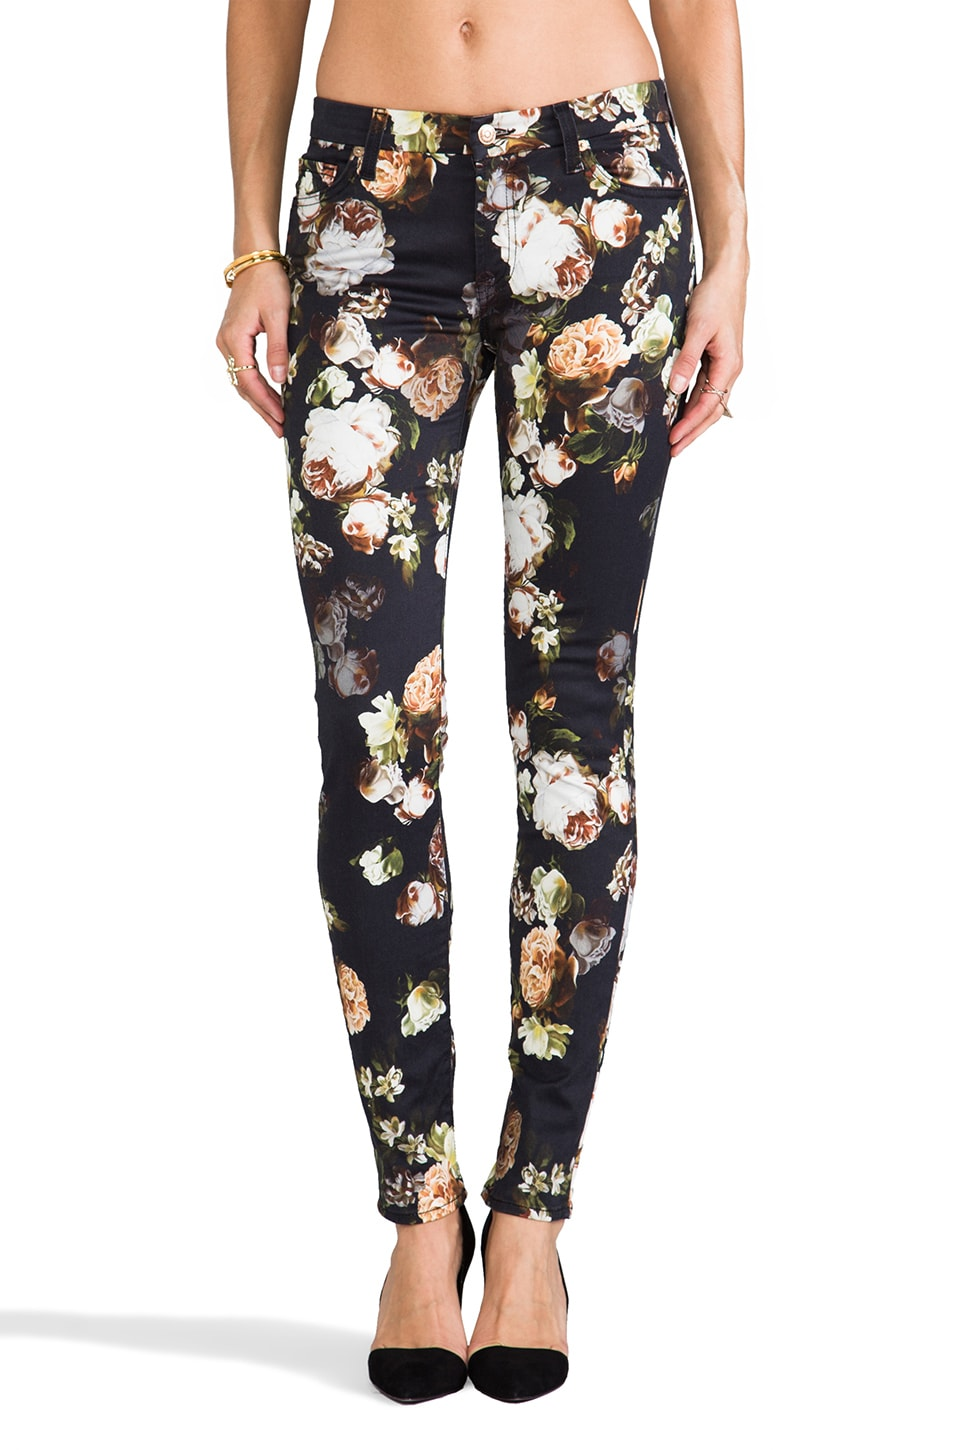 7 For All Mankind The Skinny in Nighttime Floral